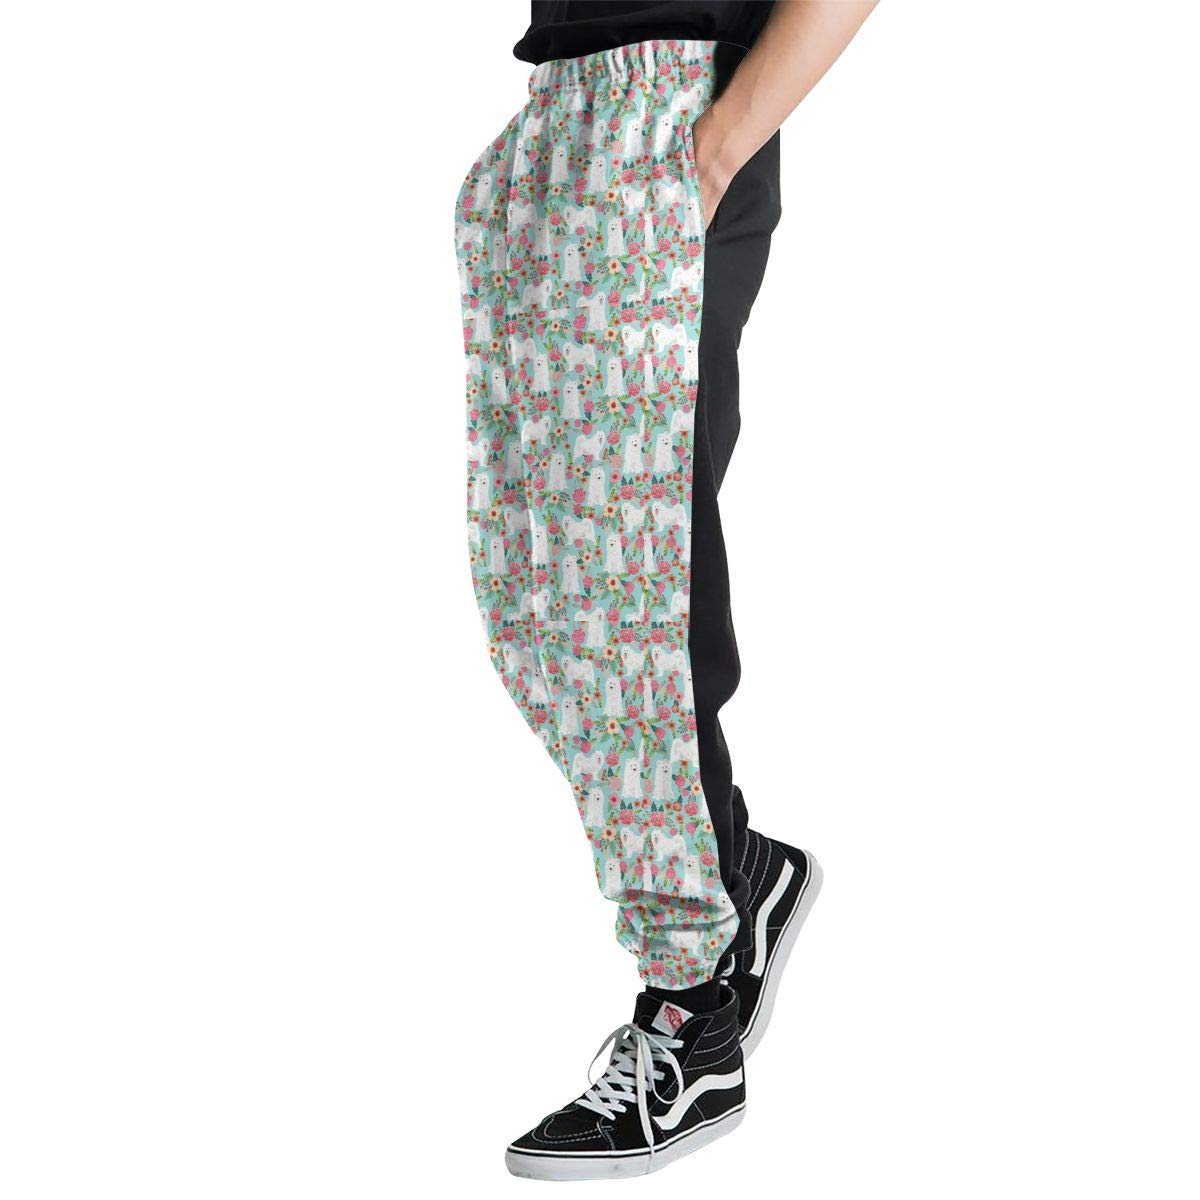 Men 3D Digital Print Joggers Sweatpants Samoyed Dogs Floral Dog Sweatpants with Size S-3XL